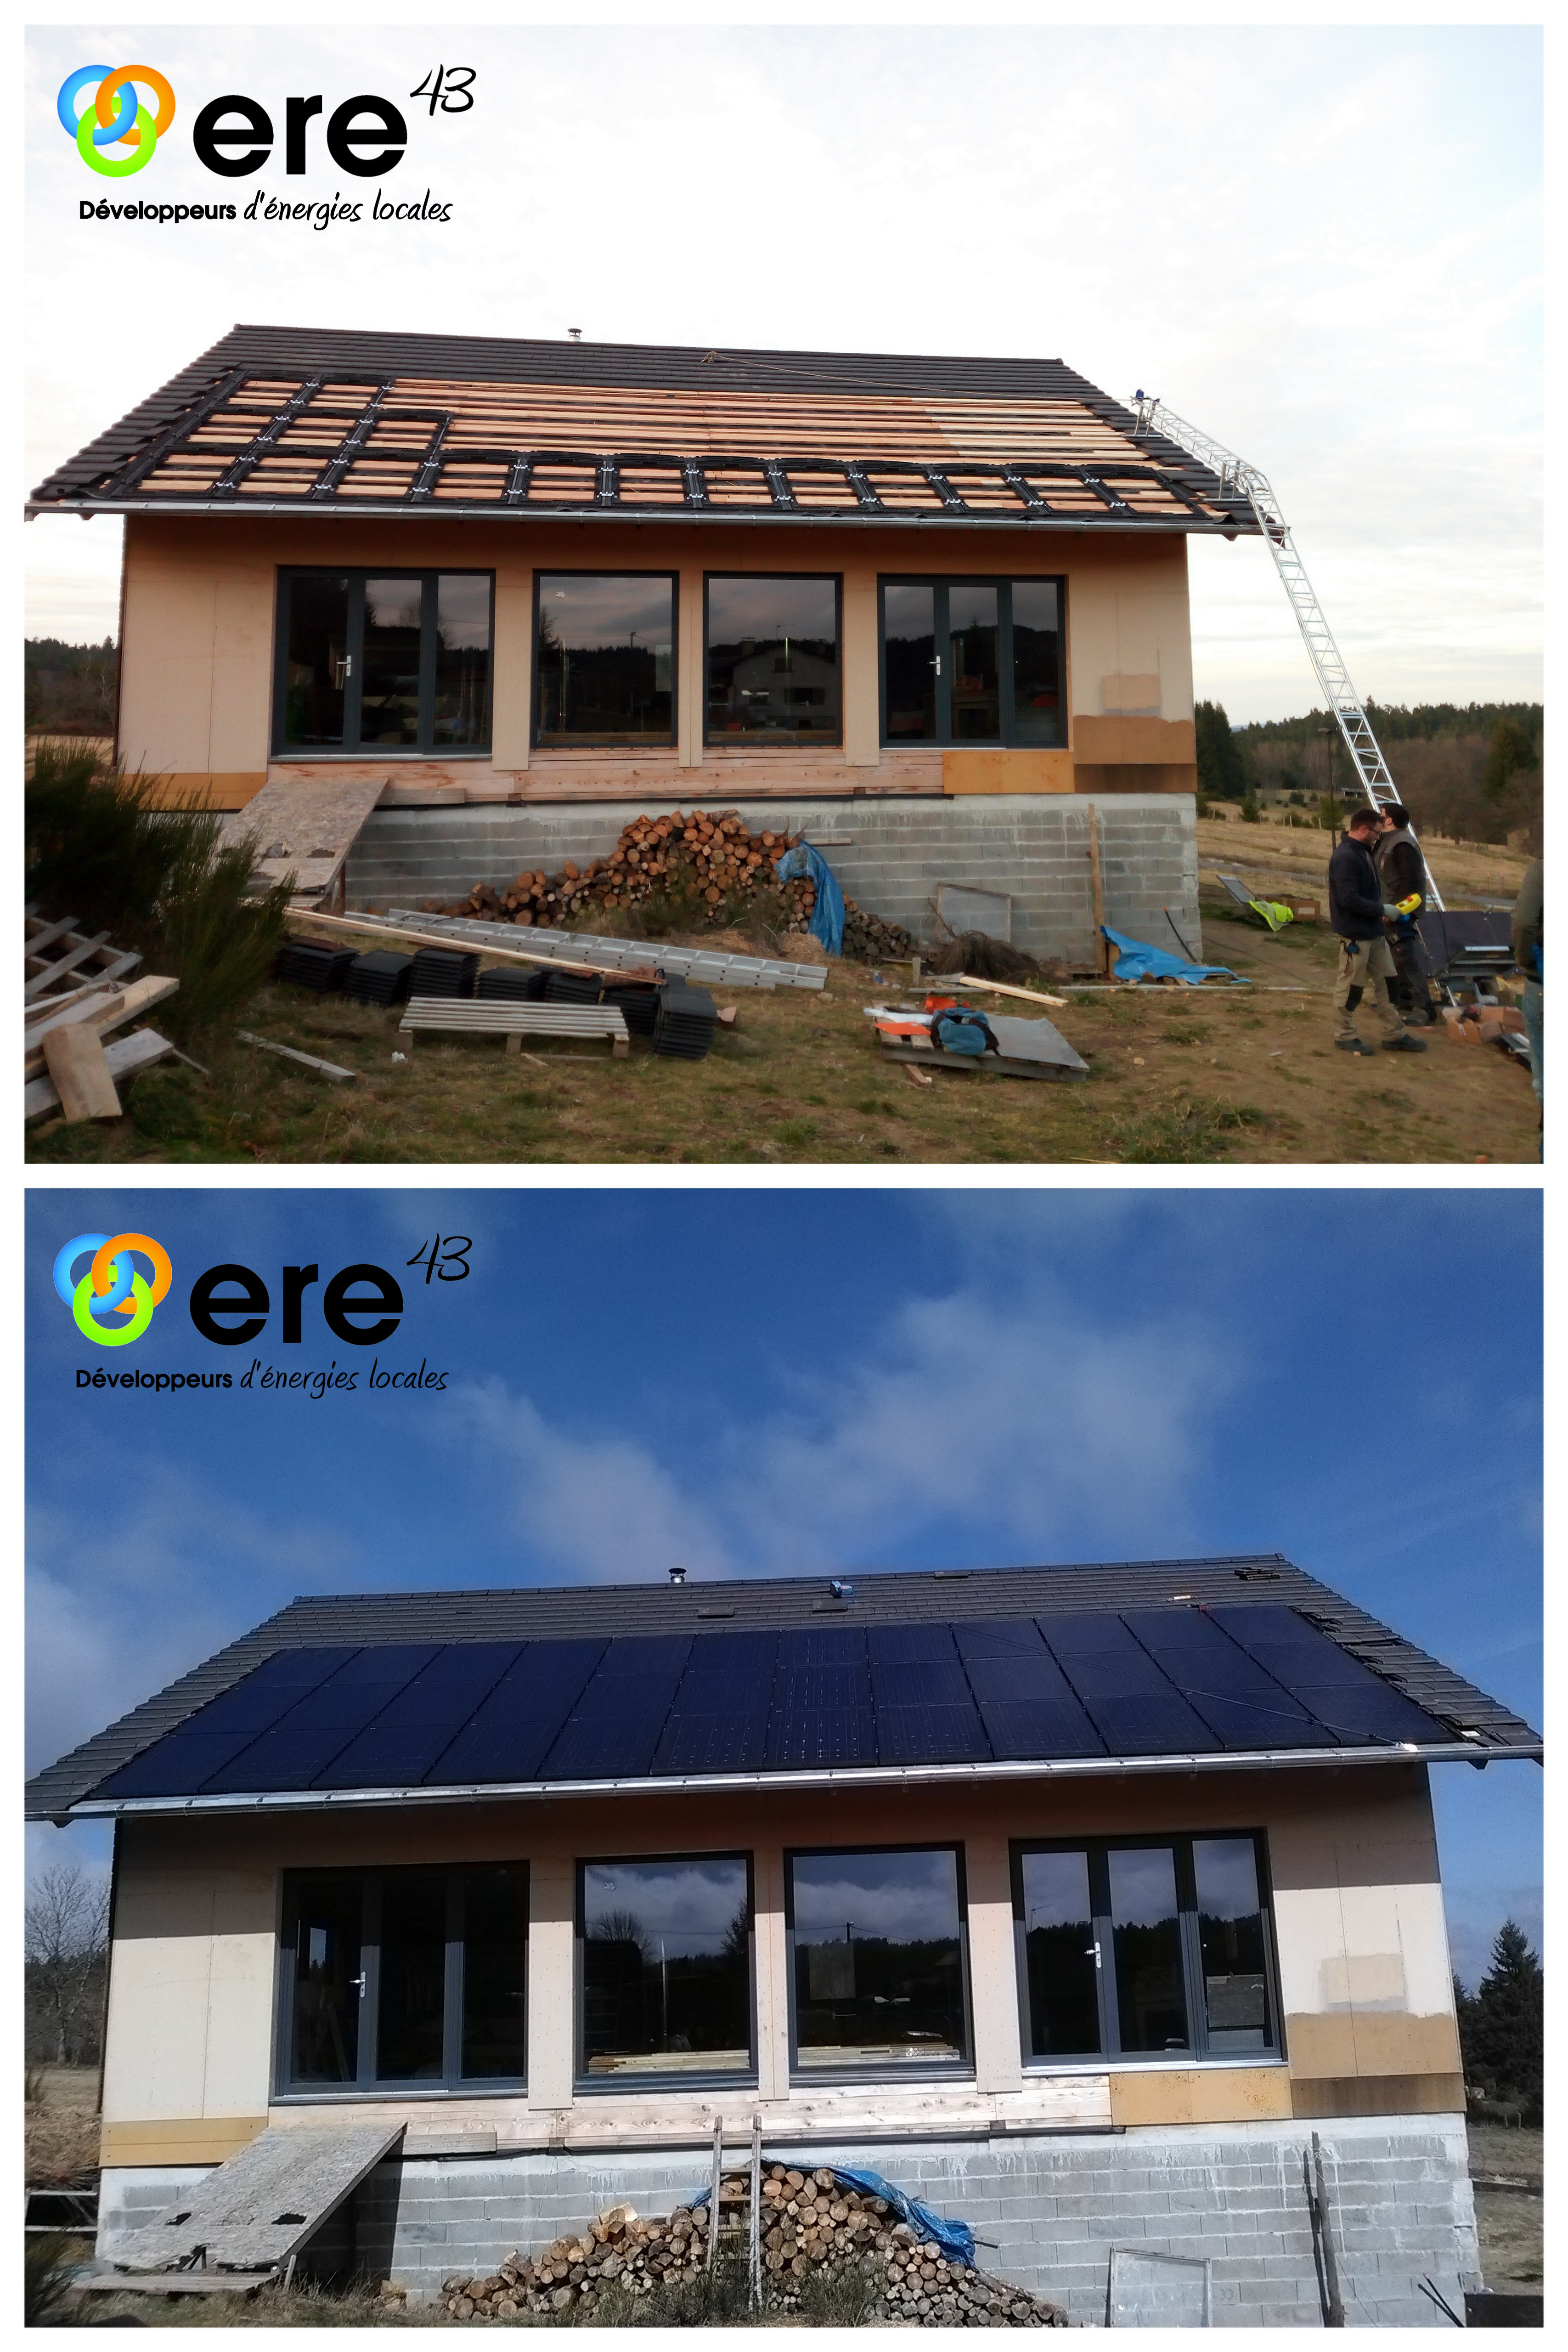 Centrale PV st jeures -ere43